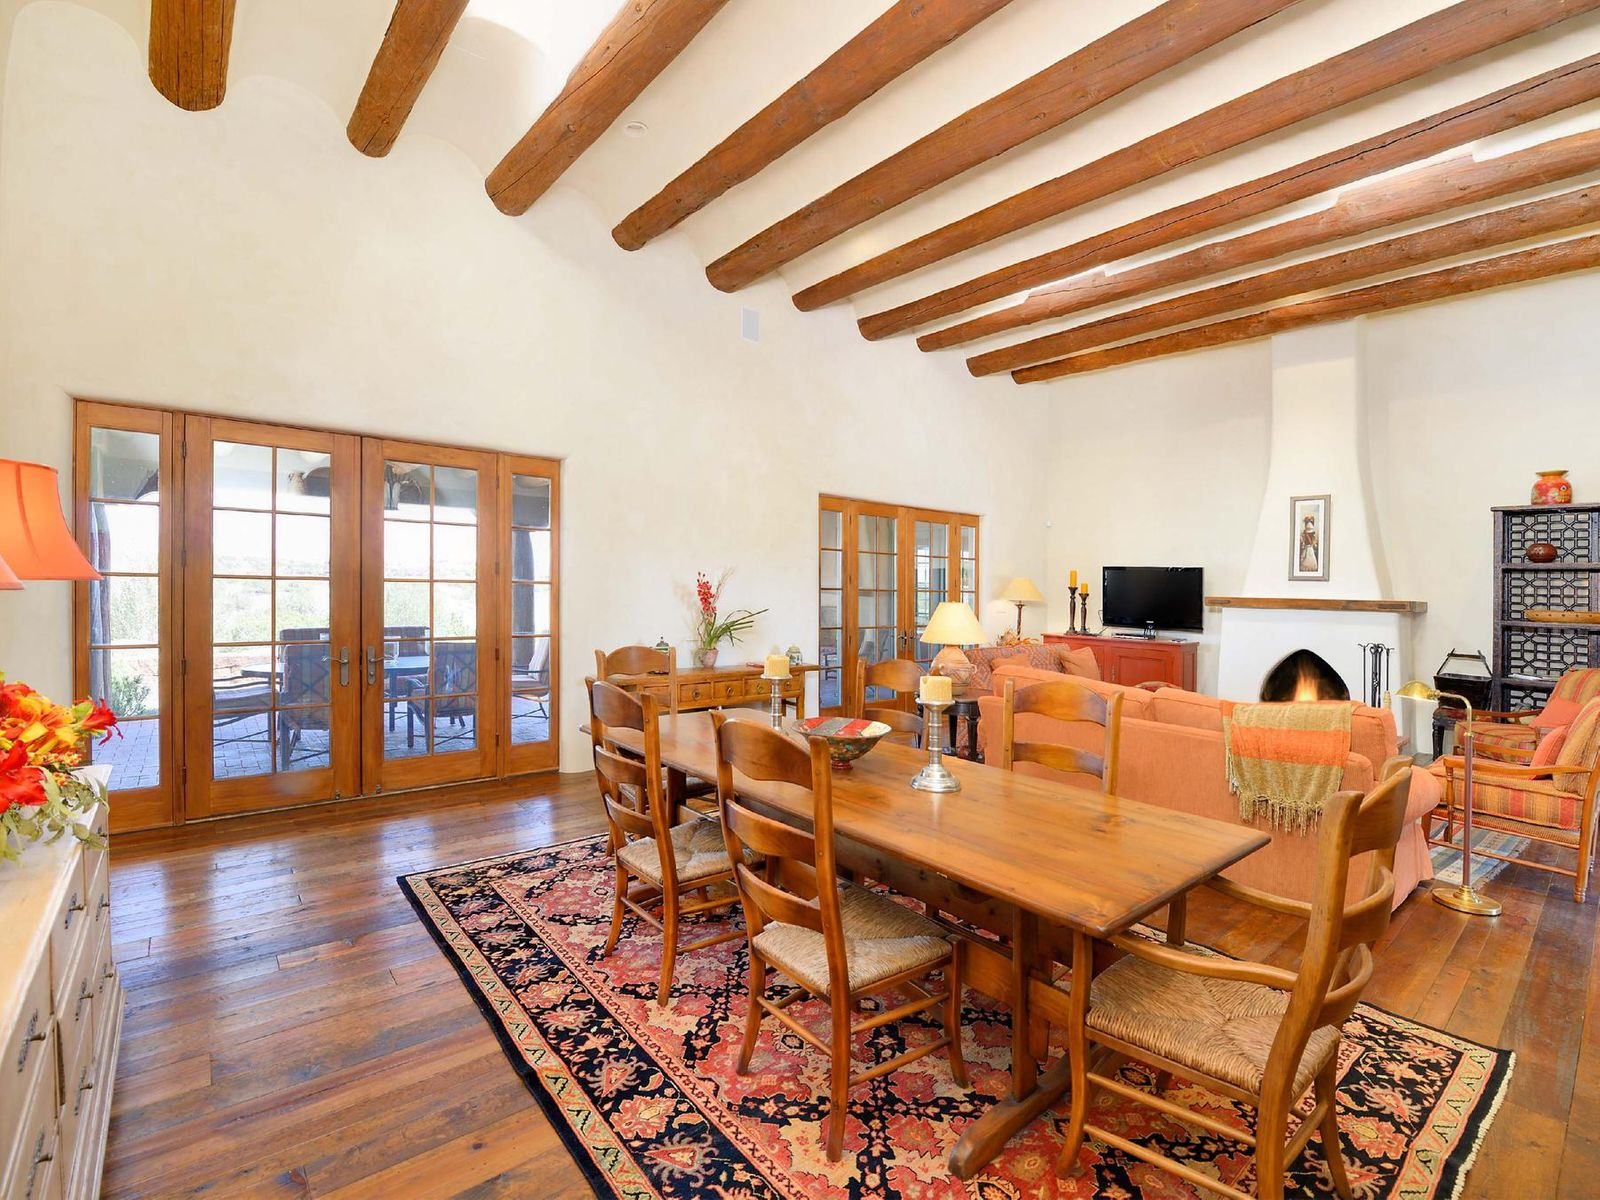 4 Calle Cimarron, Santa Fe NM Single Family Home - Santa Fe Real Estate